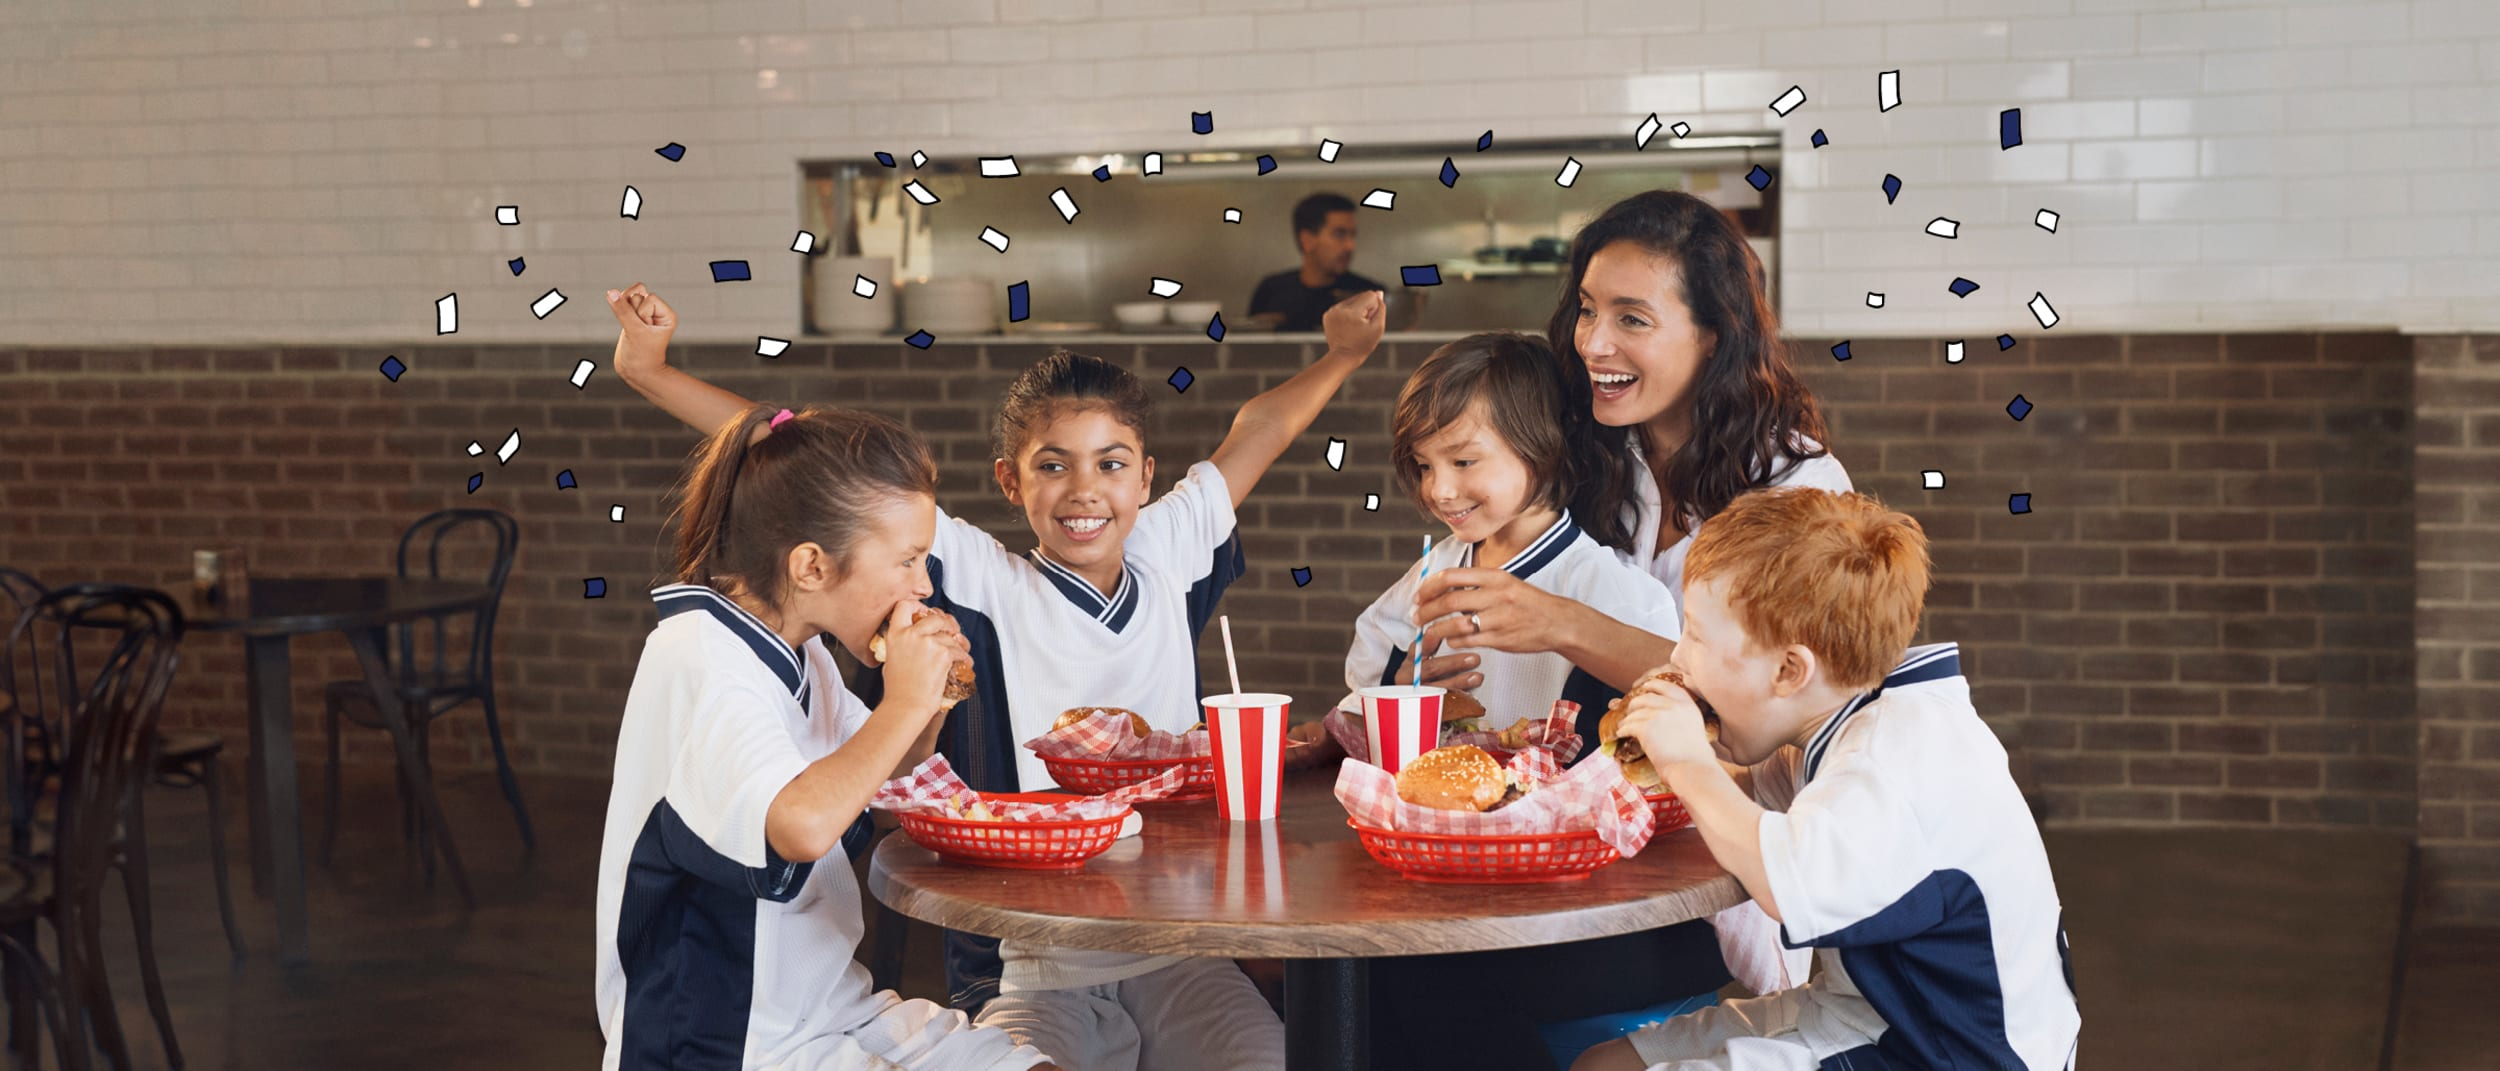 The Westfield Riccarton Food Court Grand Re-opening